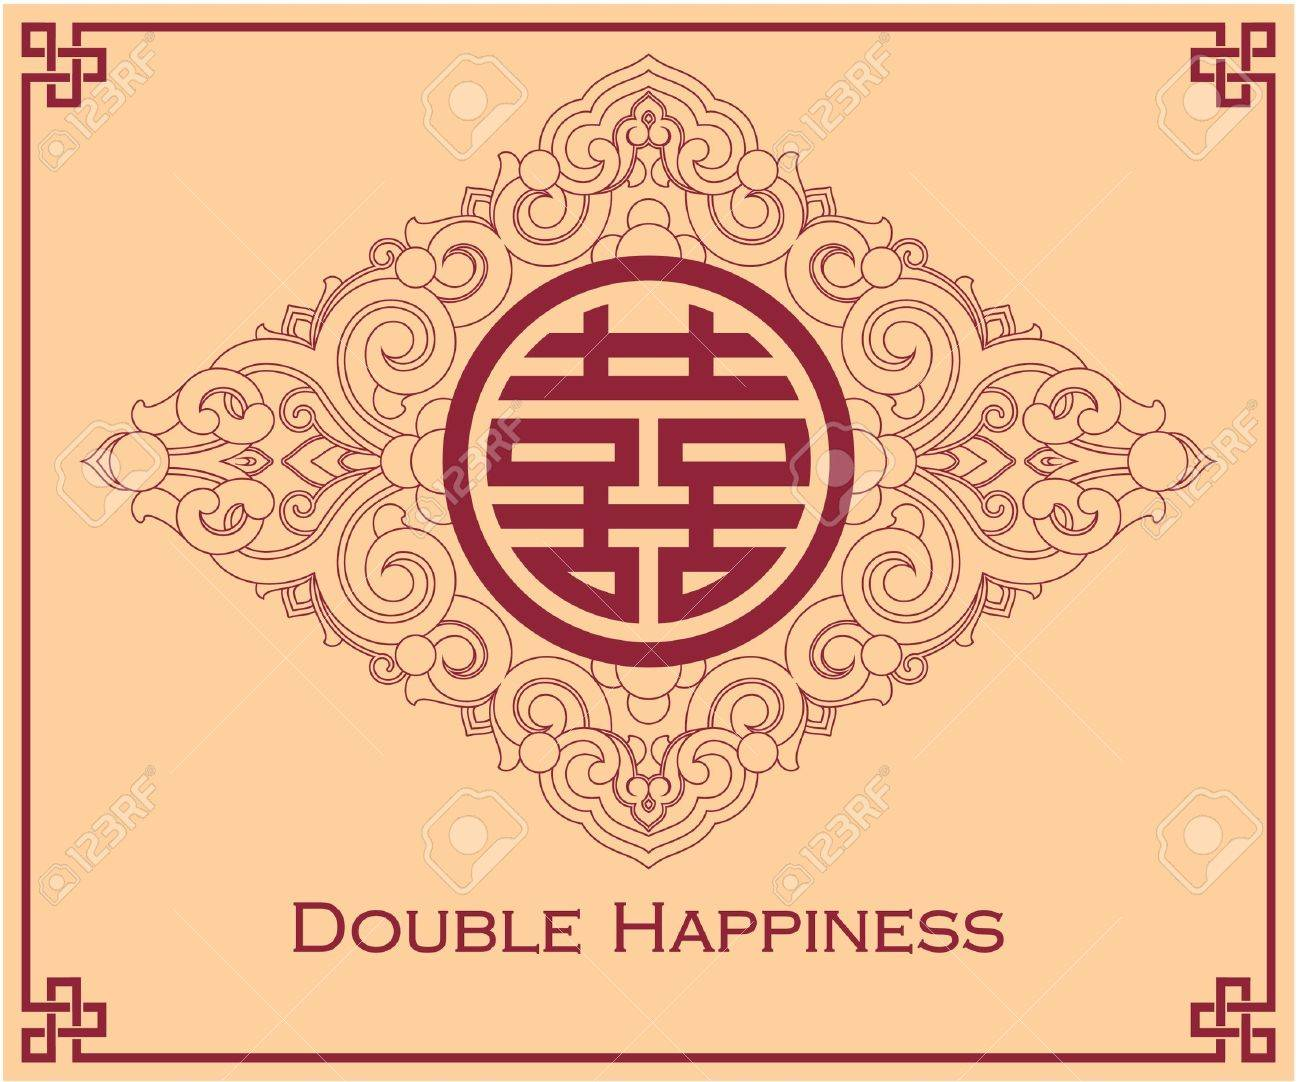 photo double happiness symbol design chinese wedding invitation Double Happiness Symbol Design Stock Vector